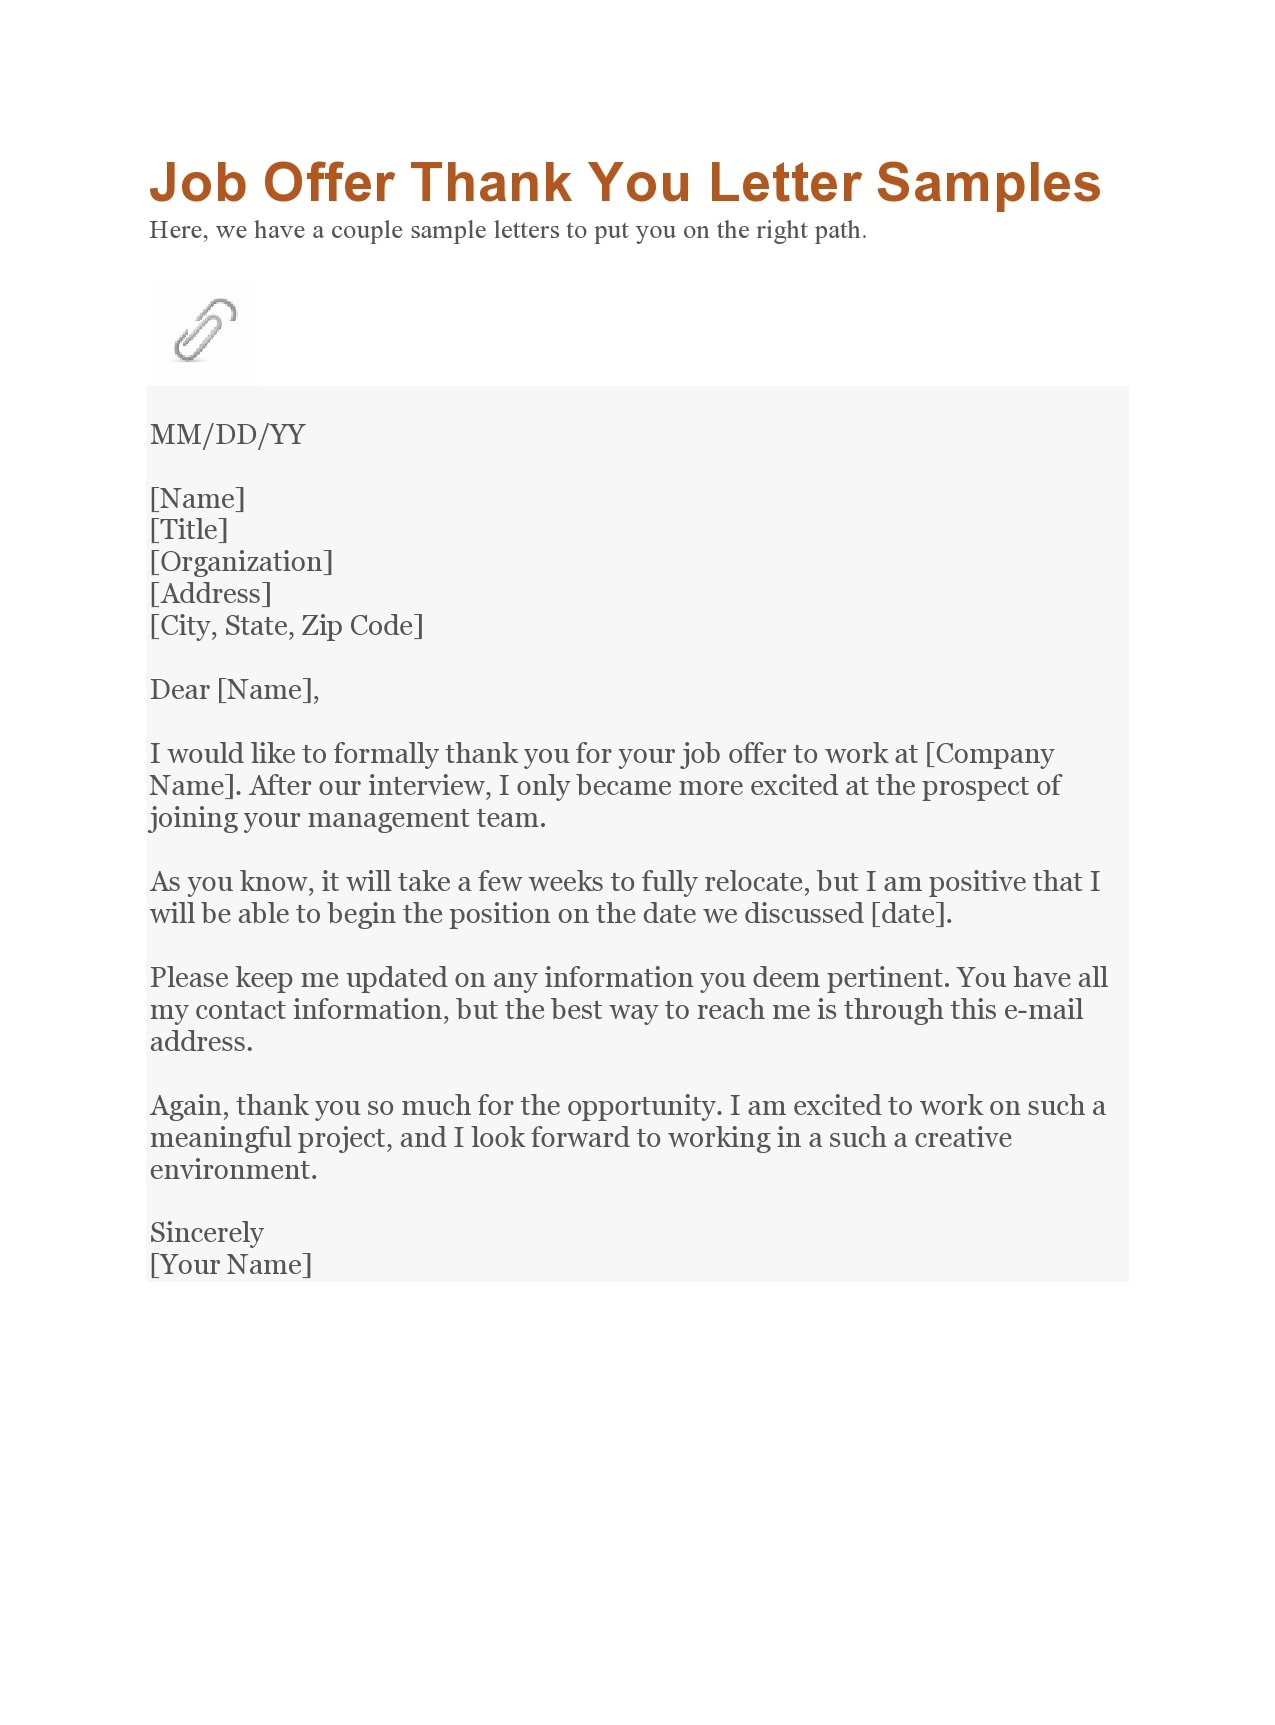 Thank You Letter After Job Interview Template from templatearchive.com